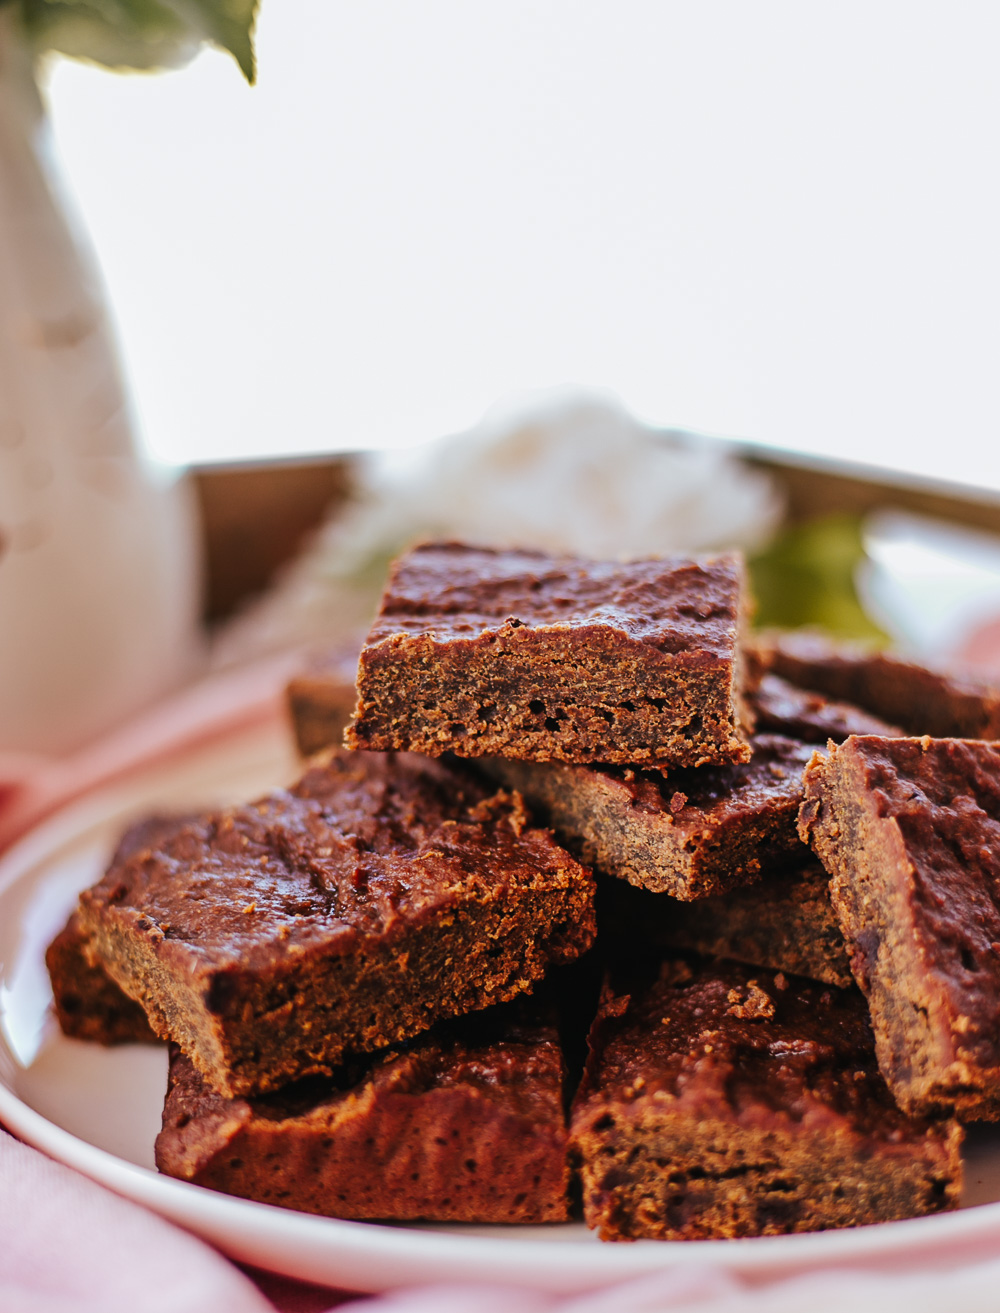 Easy Healthy Carrot Brownies are unbelievably quick and mess-free to make! They're full of healthy produce, low-sugar, low-calorie, and so yummy! #healthydessert #healthysnack #lowcaloriedessert #lowcaloriesnack #lowcalorie #lowcalorierecipe #healthy #healthyrecipe #healthydessertrecipe #healthybrownies #carrotbrownies